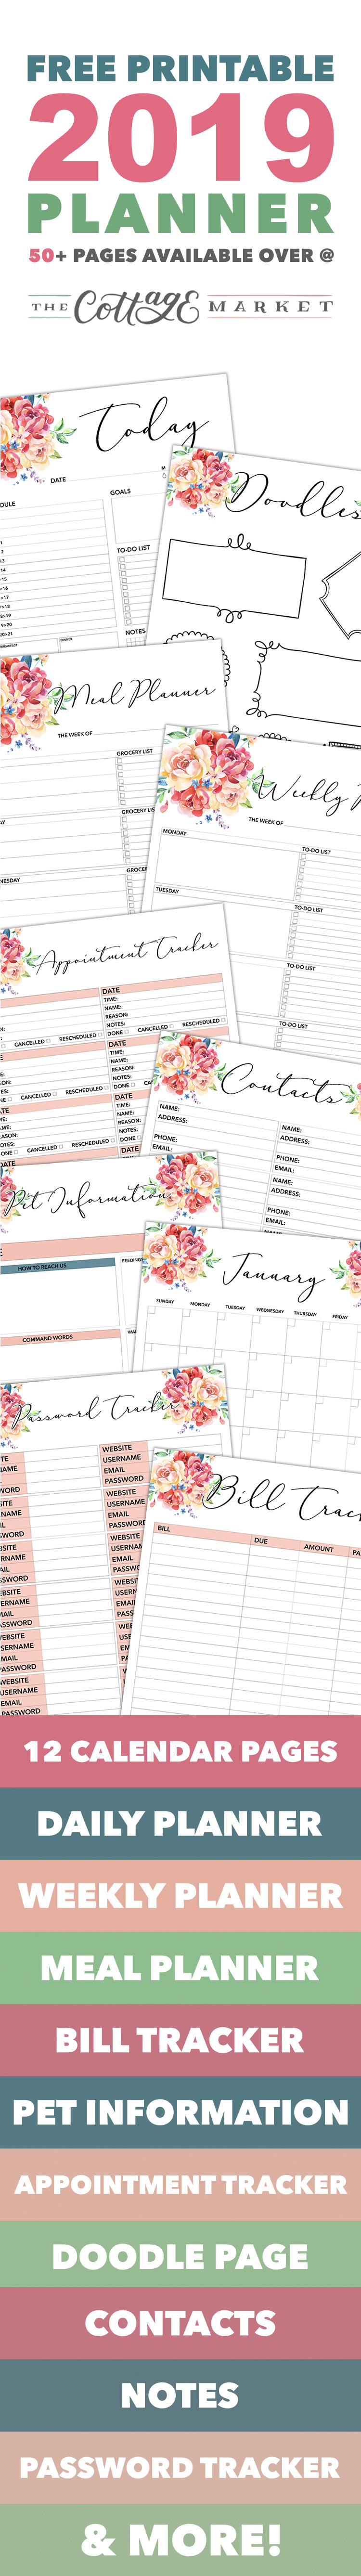 Come on in and snatch up your Free Printable 2018 Planner 50 Plus Printable Pages!!! You will find everything you need to get organized for the new year!